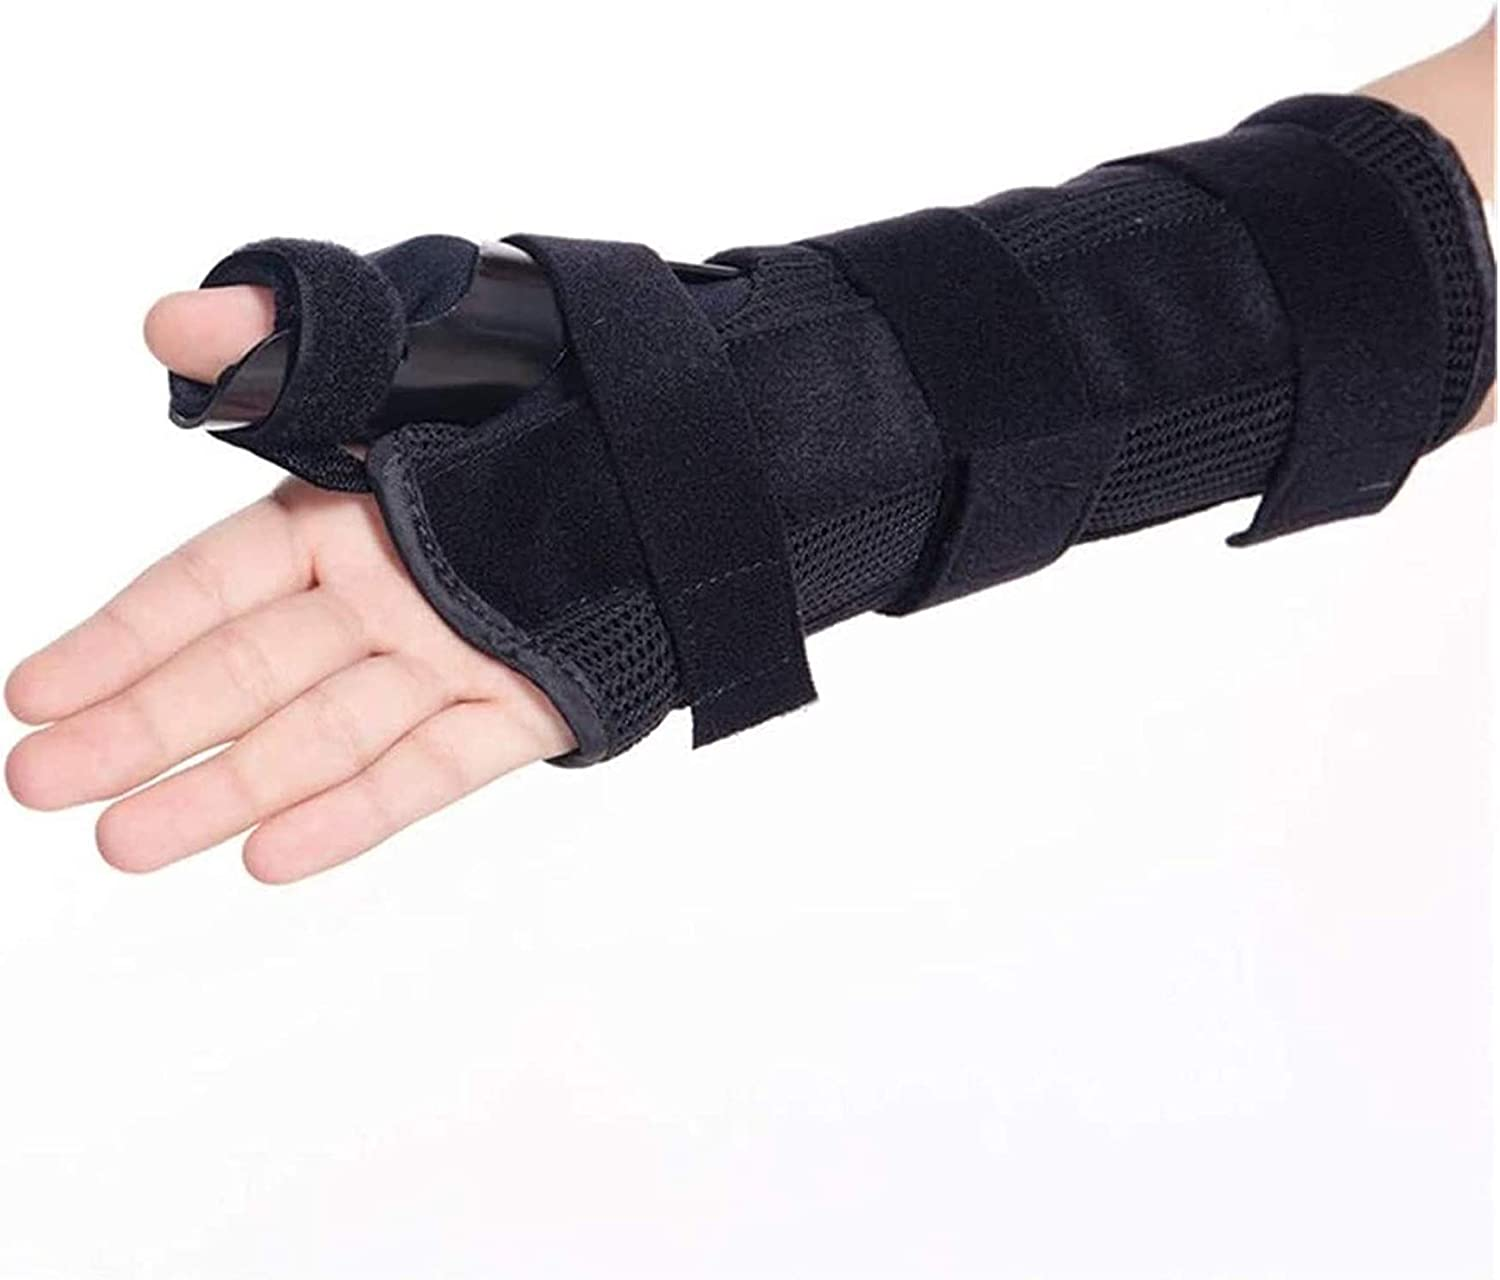 25% OFF FGUD Financial sales sale Portable Thumb Splints with Spl Aluminum Stay Wrist Support